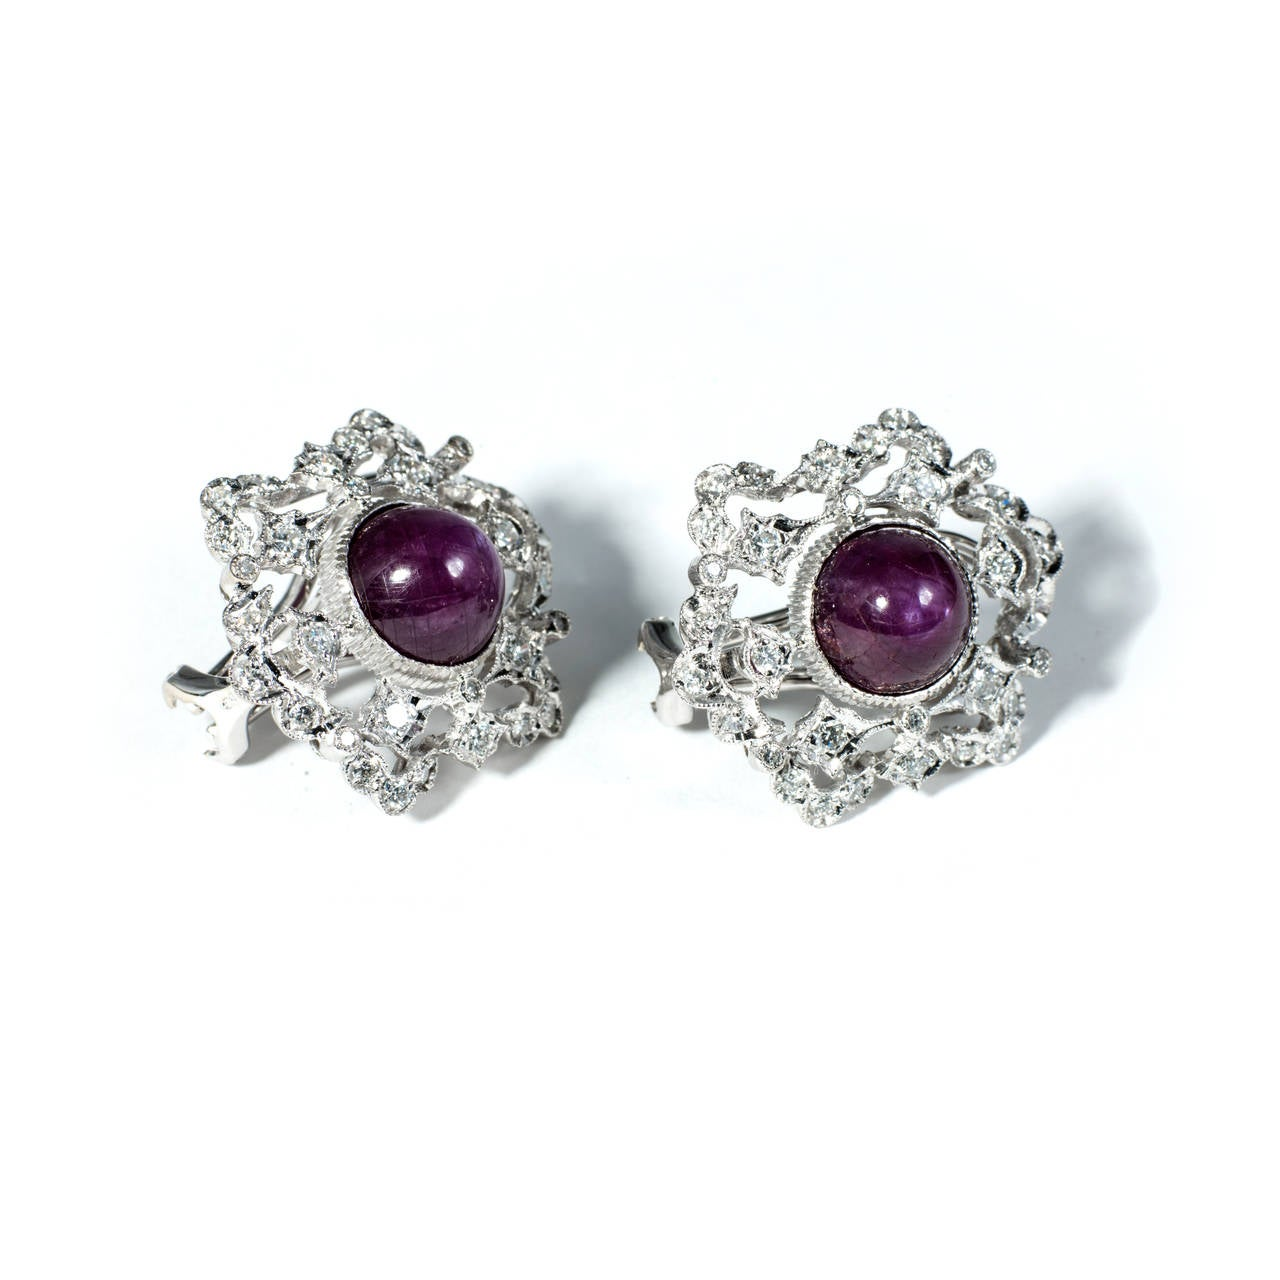 Oval Cut GIA Certified 5.00 Carat Ruby Diamond White Gold Earrings For Sale